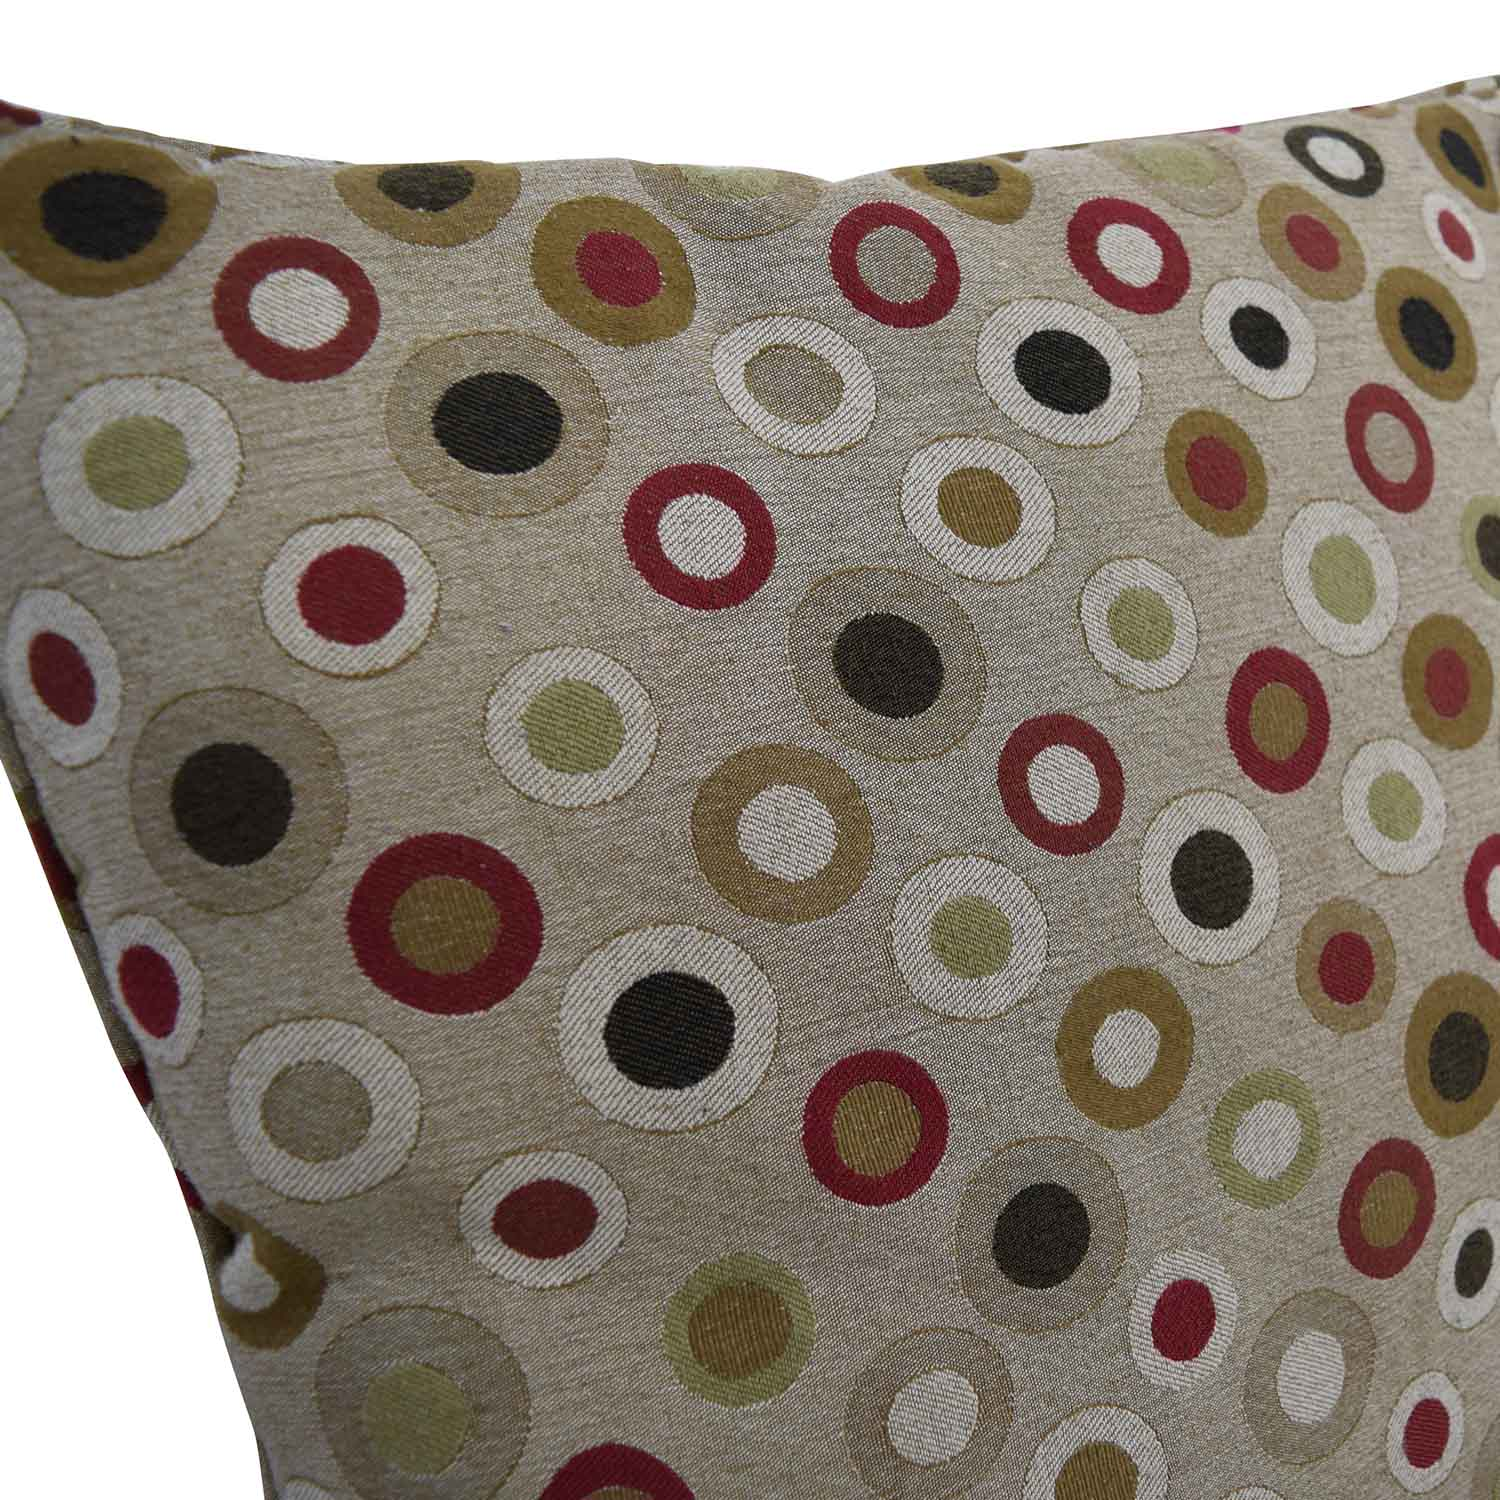 shop Tan with Multi-Colored Circles Toss Pillows online